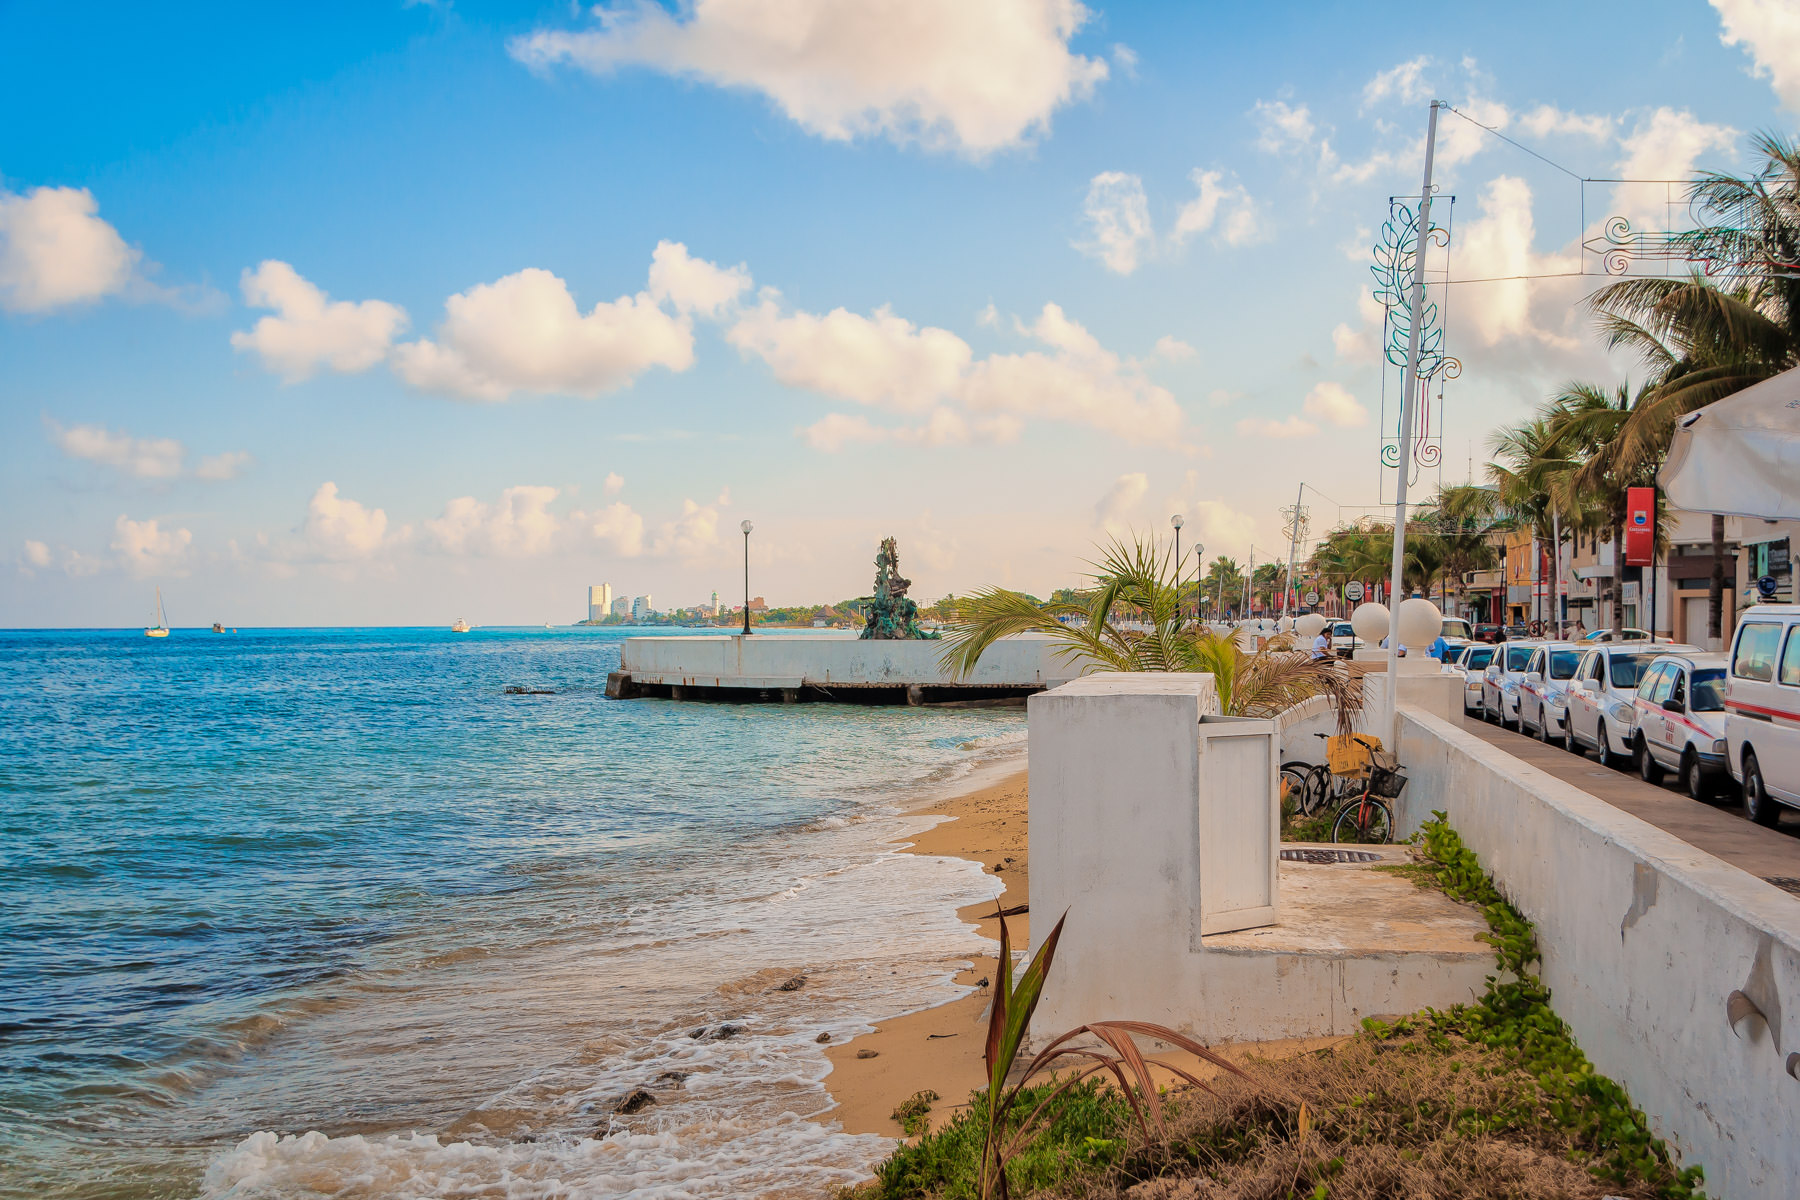 Along the waterfront in San Miguel, Cozumel, Mexico.